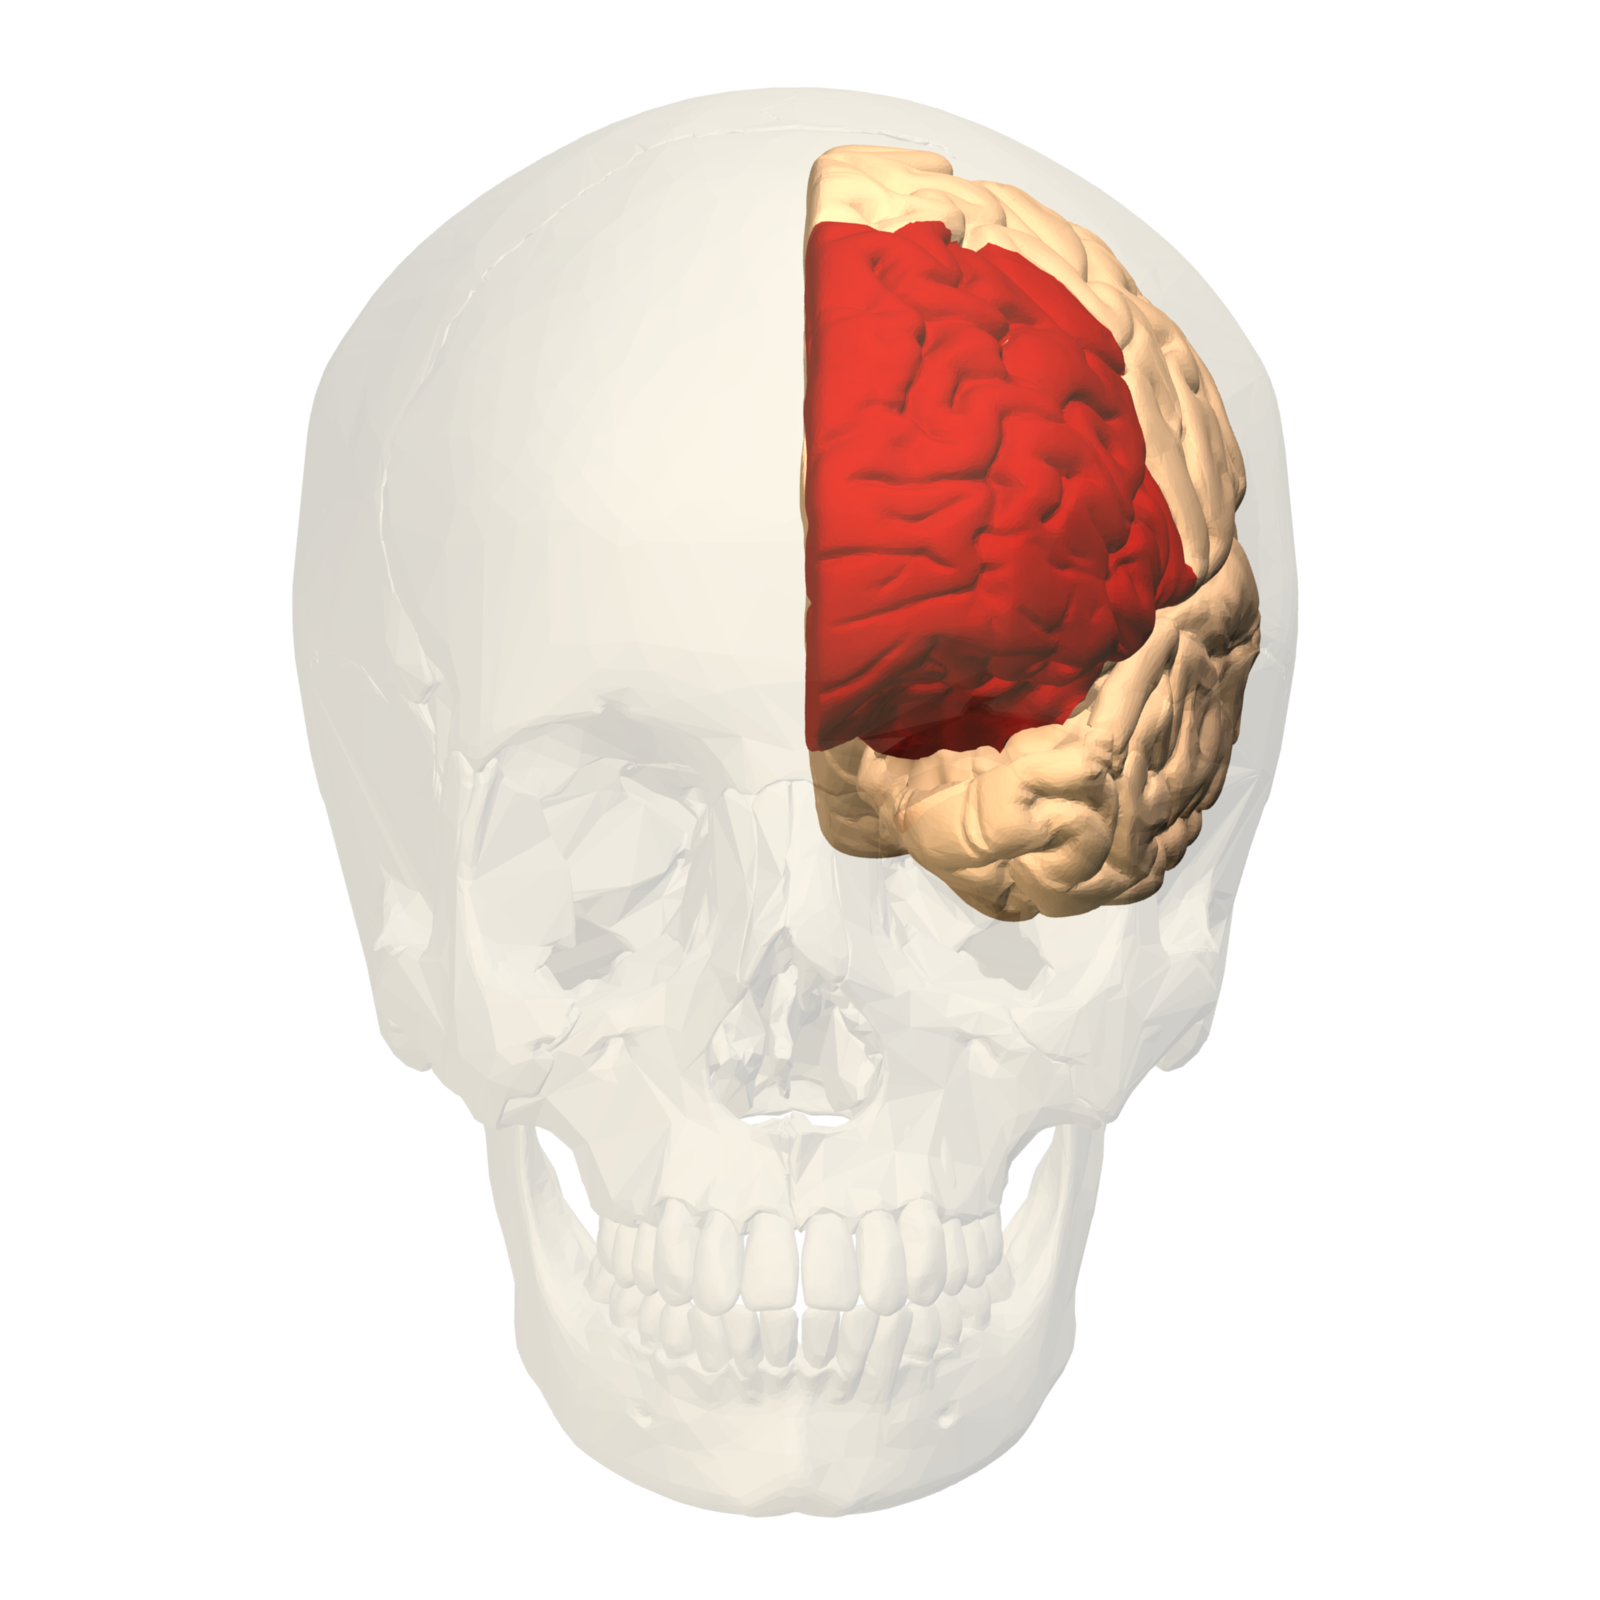 File:Prefrontal cortex (left) - anterior view.png - Wikimedia Commons